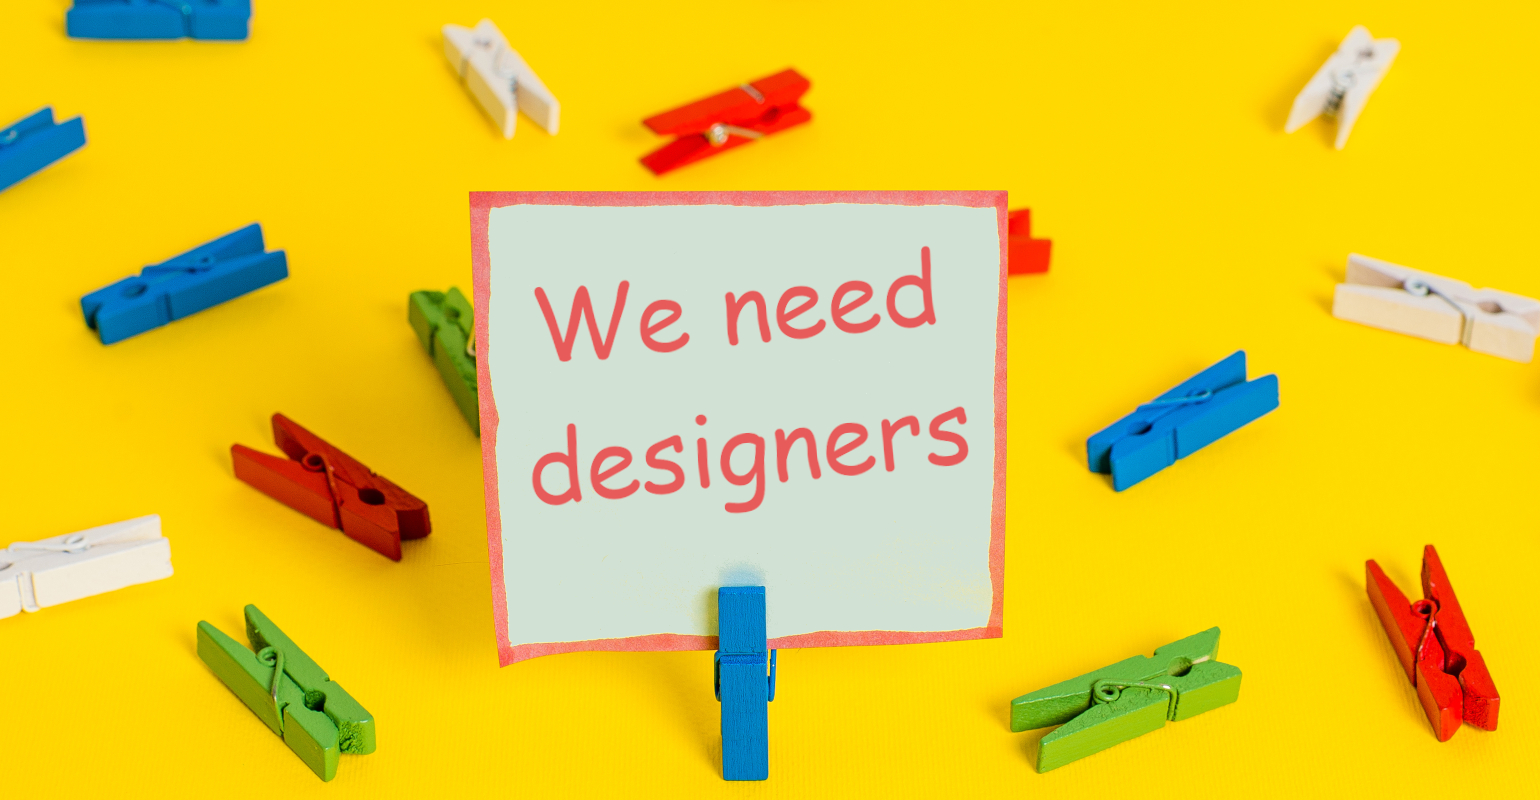 Need-Designers-Sign-AdobeStock_285950052-Artur.jpeg